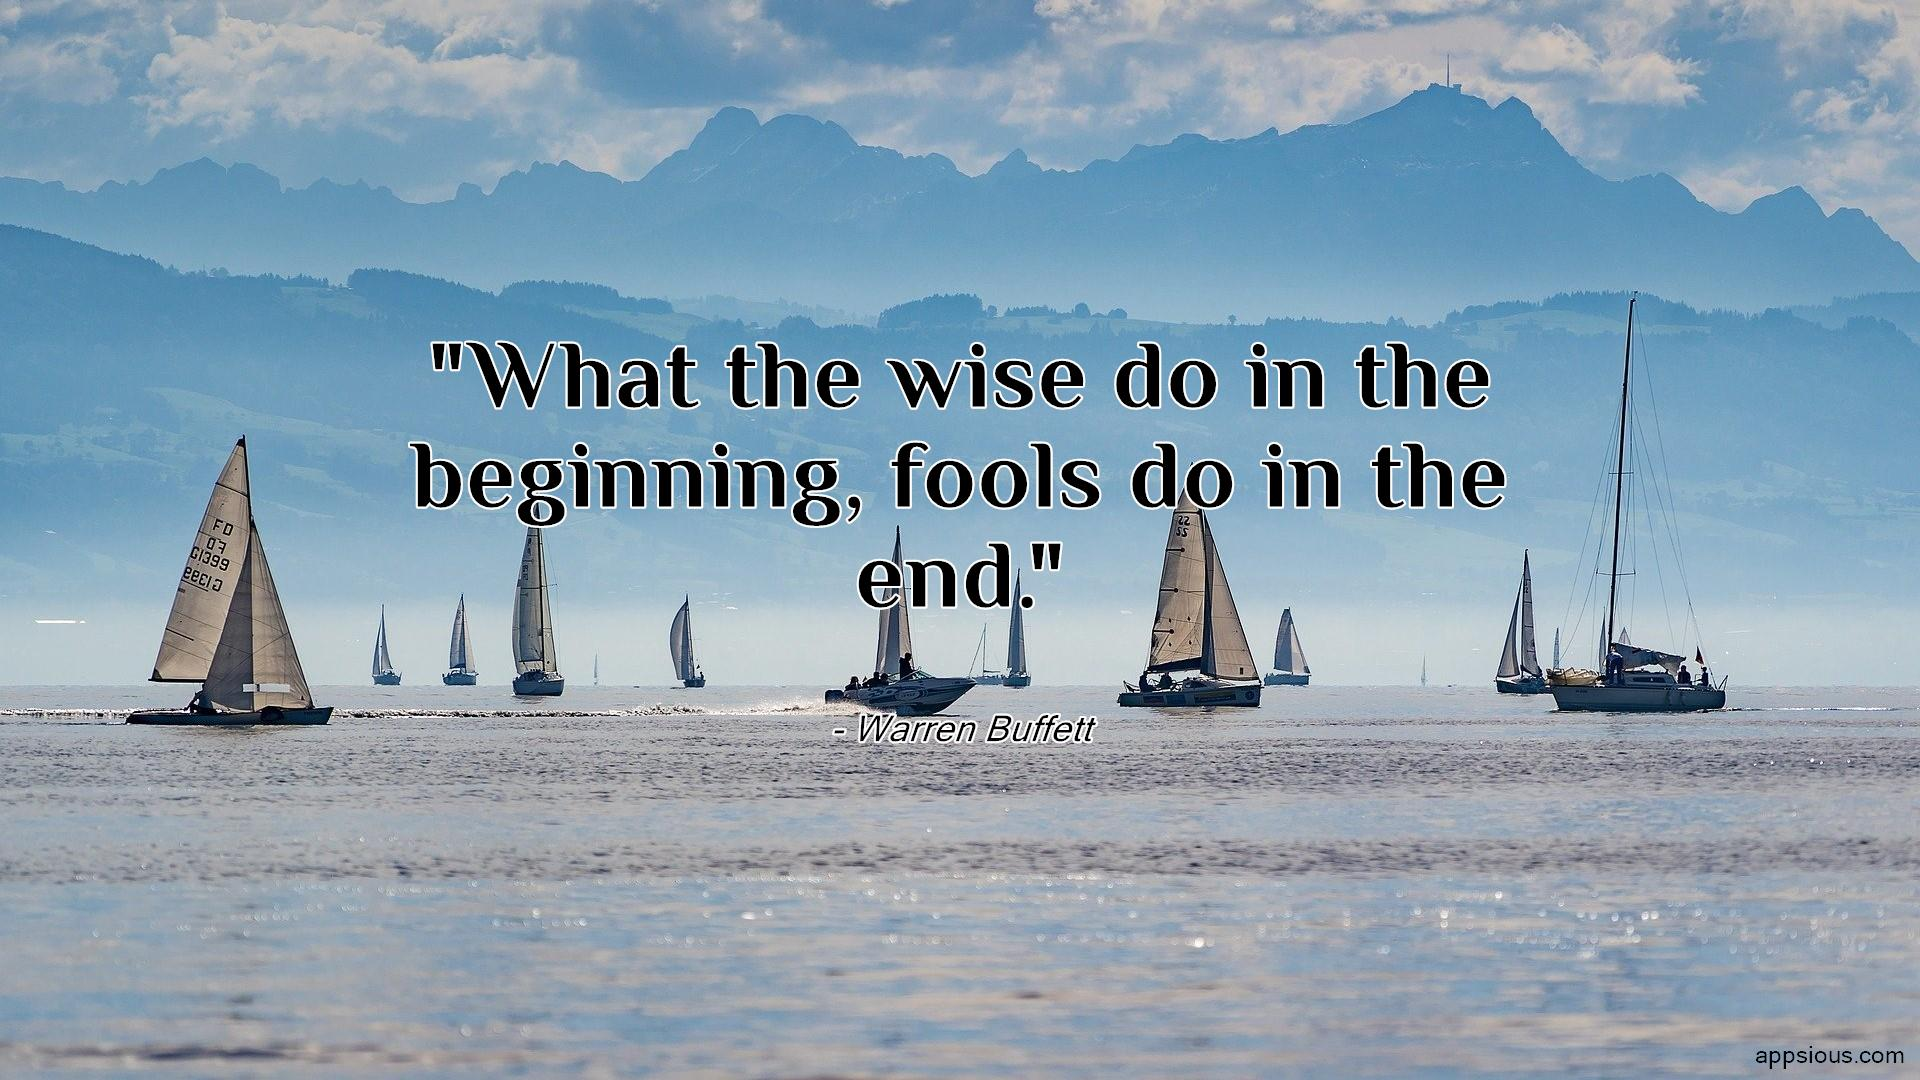 What the wise do in the beginning, fools do in the end.